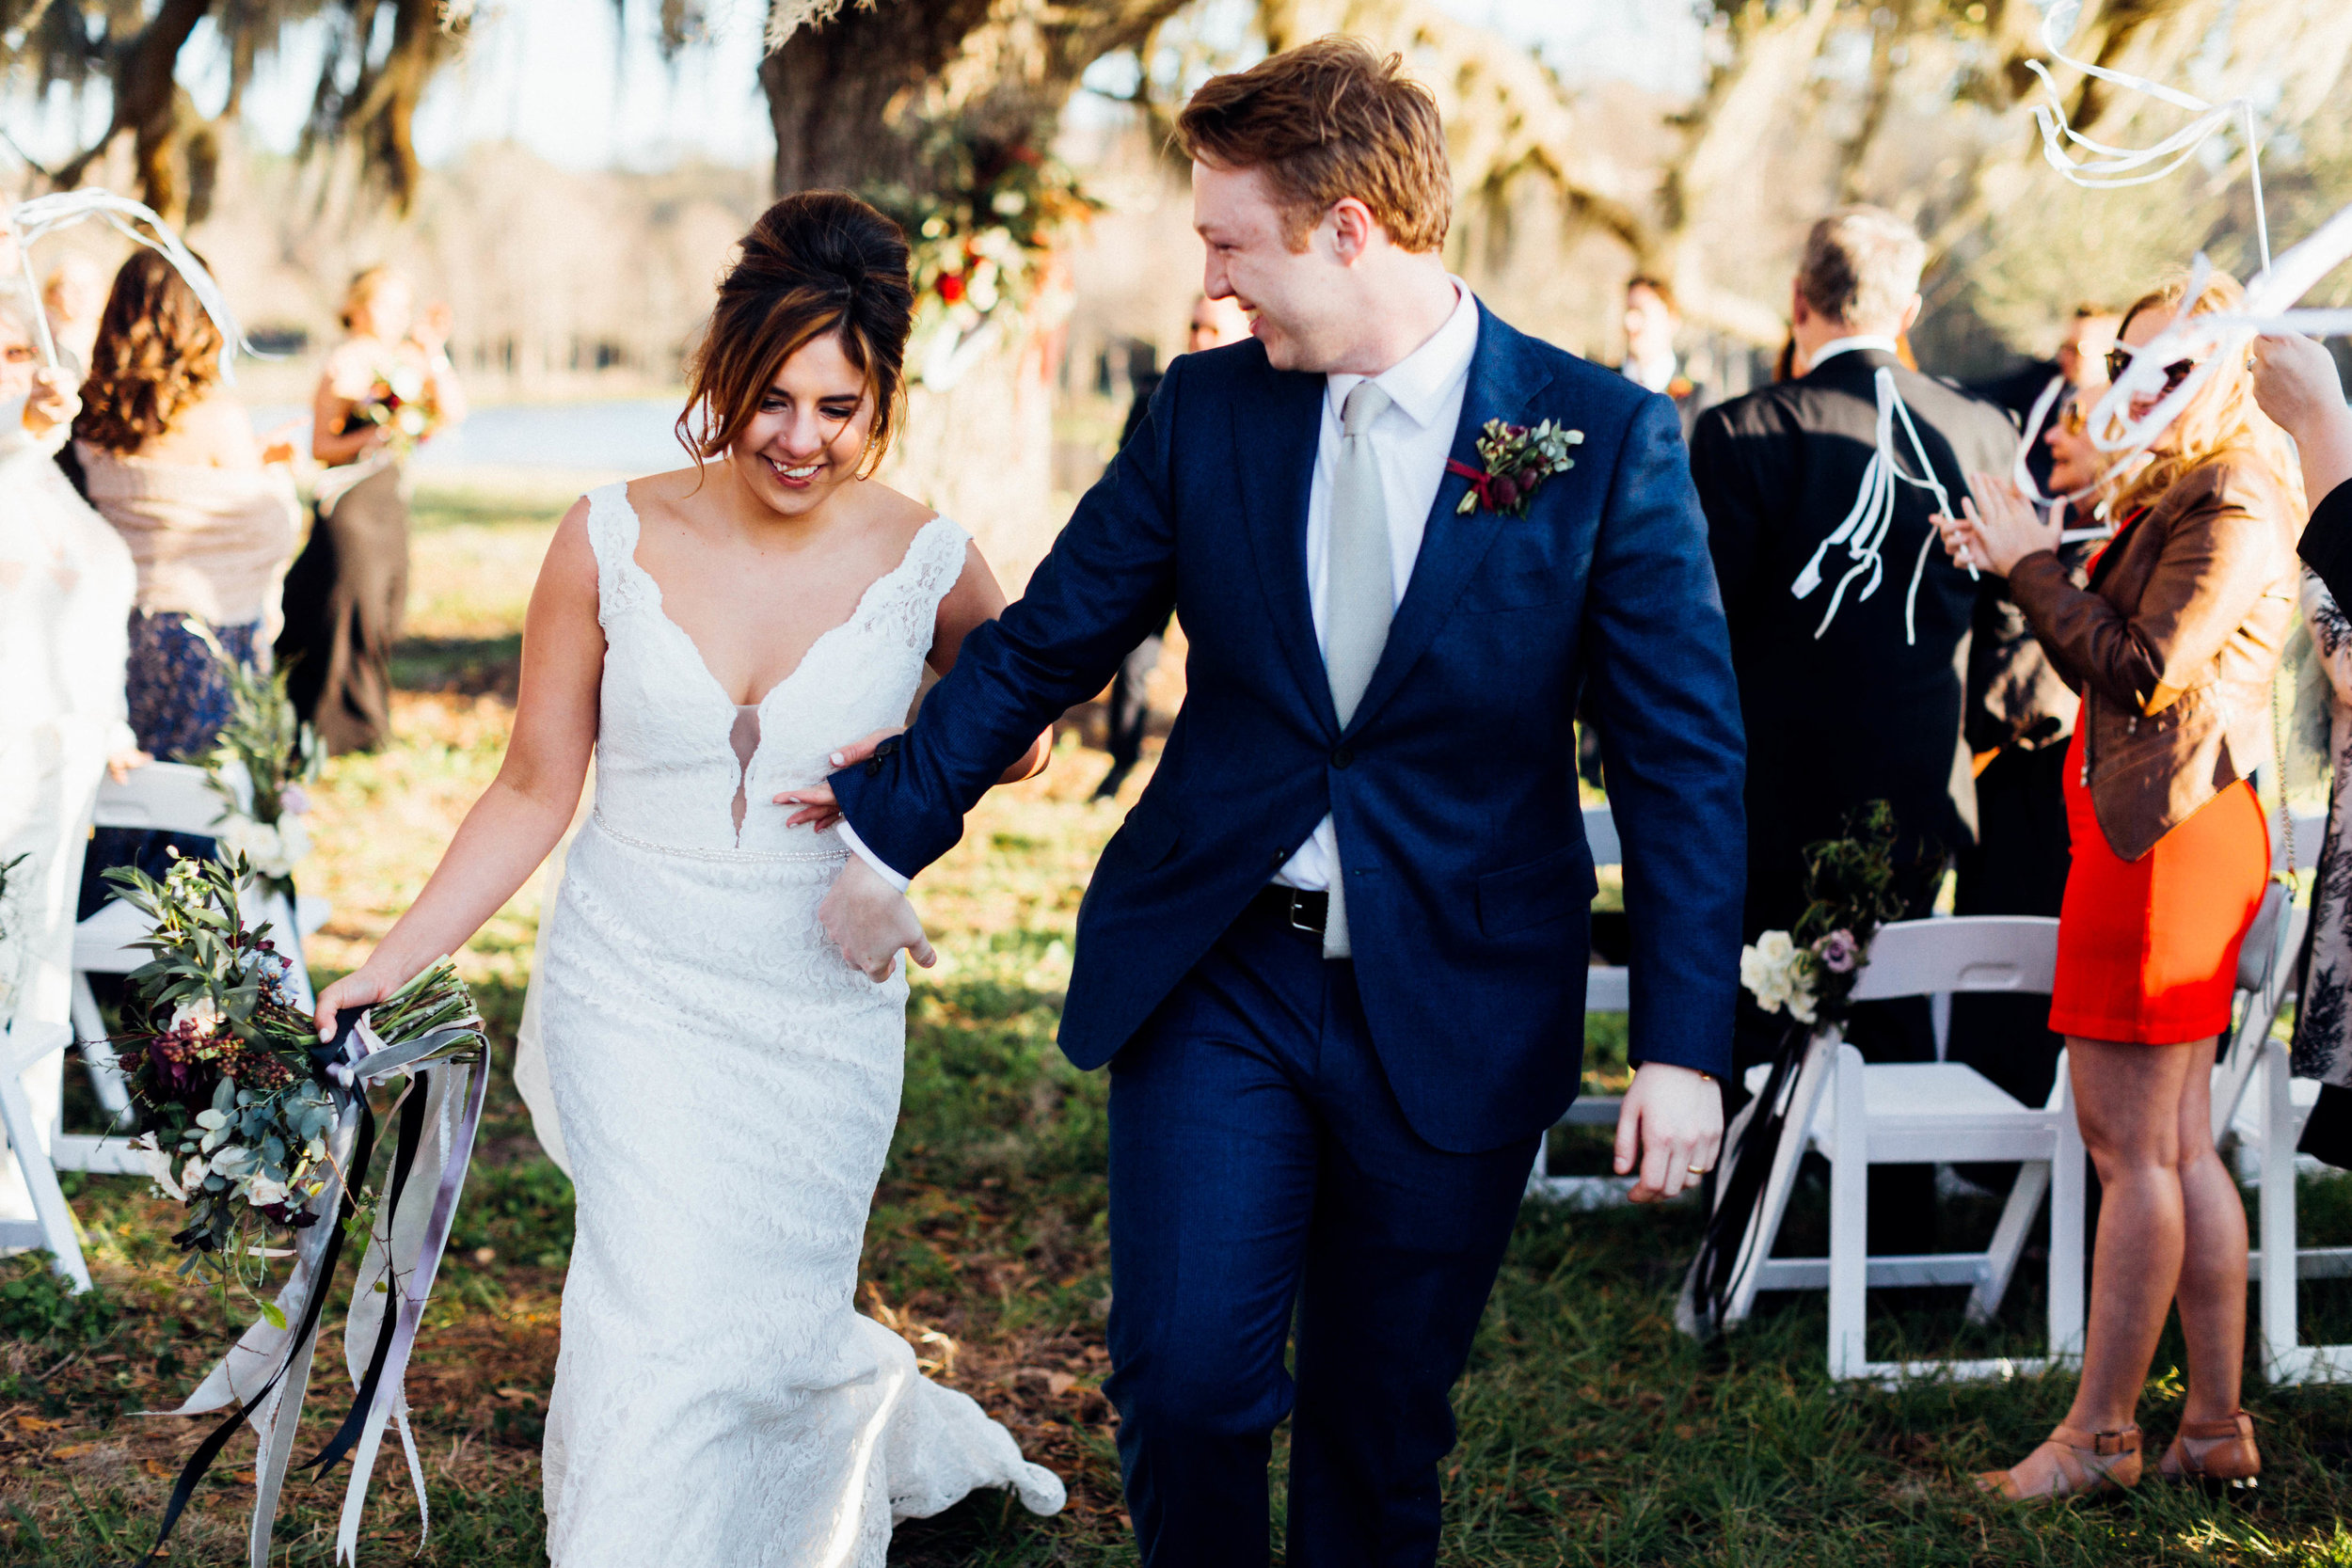 christinakarstphotography_jacksonvillewedding_congareeandpennwedding_london+liam-214.jpg